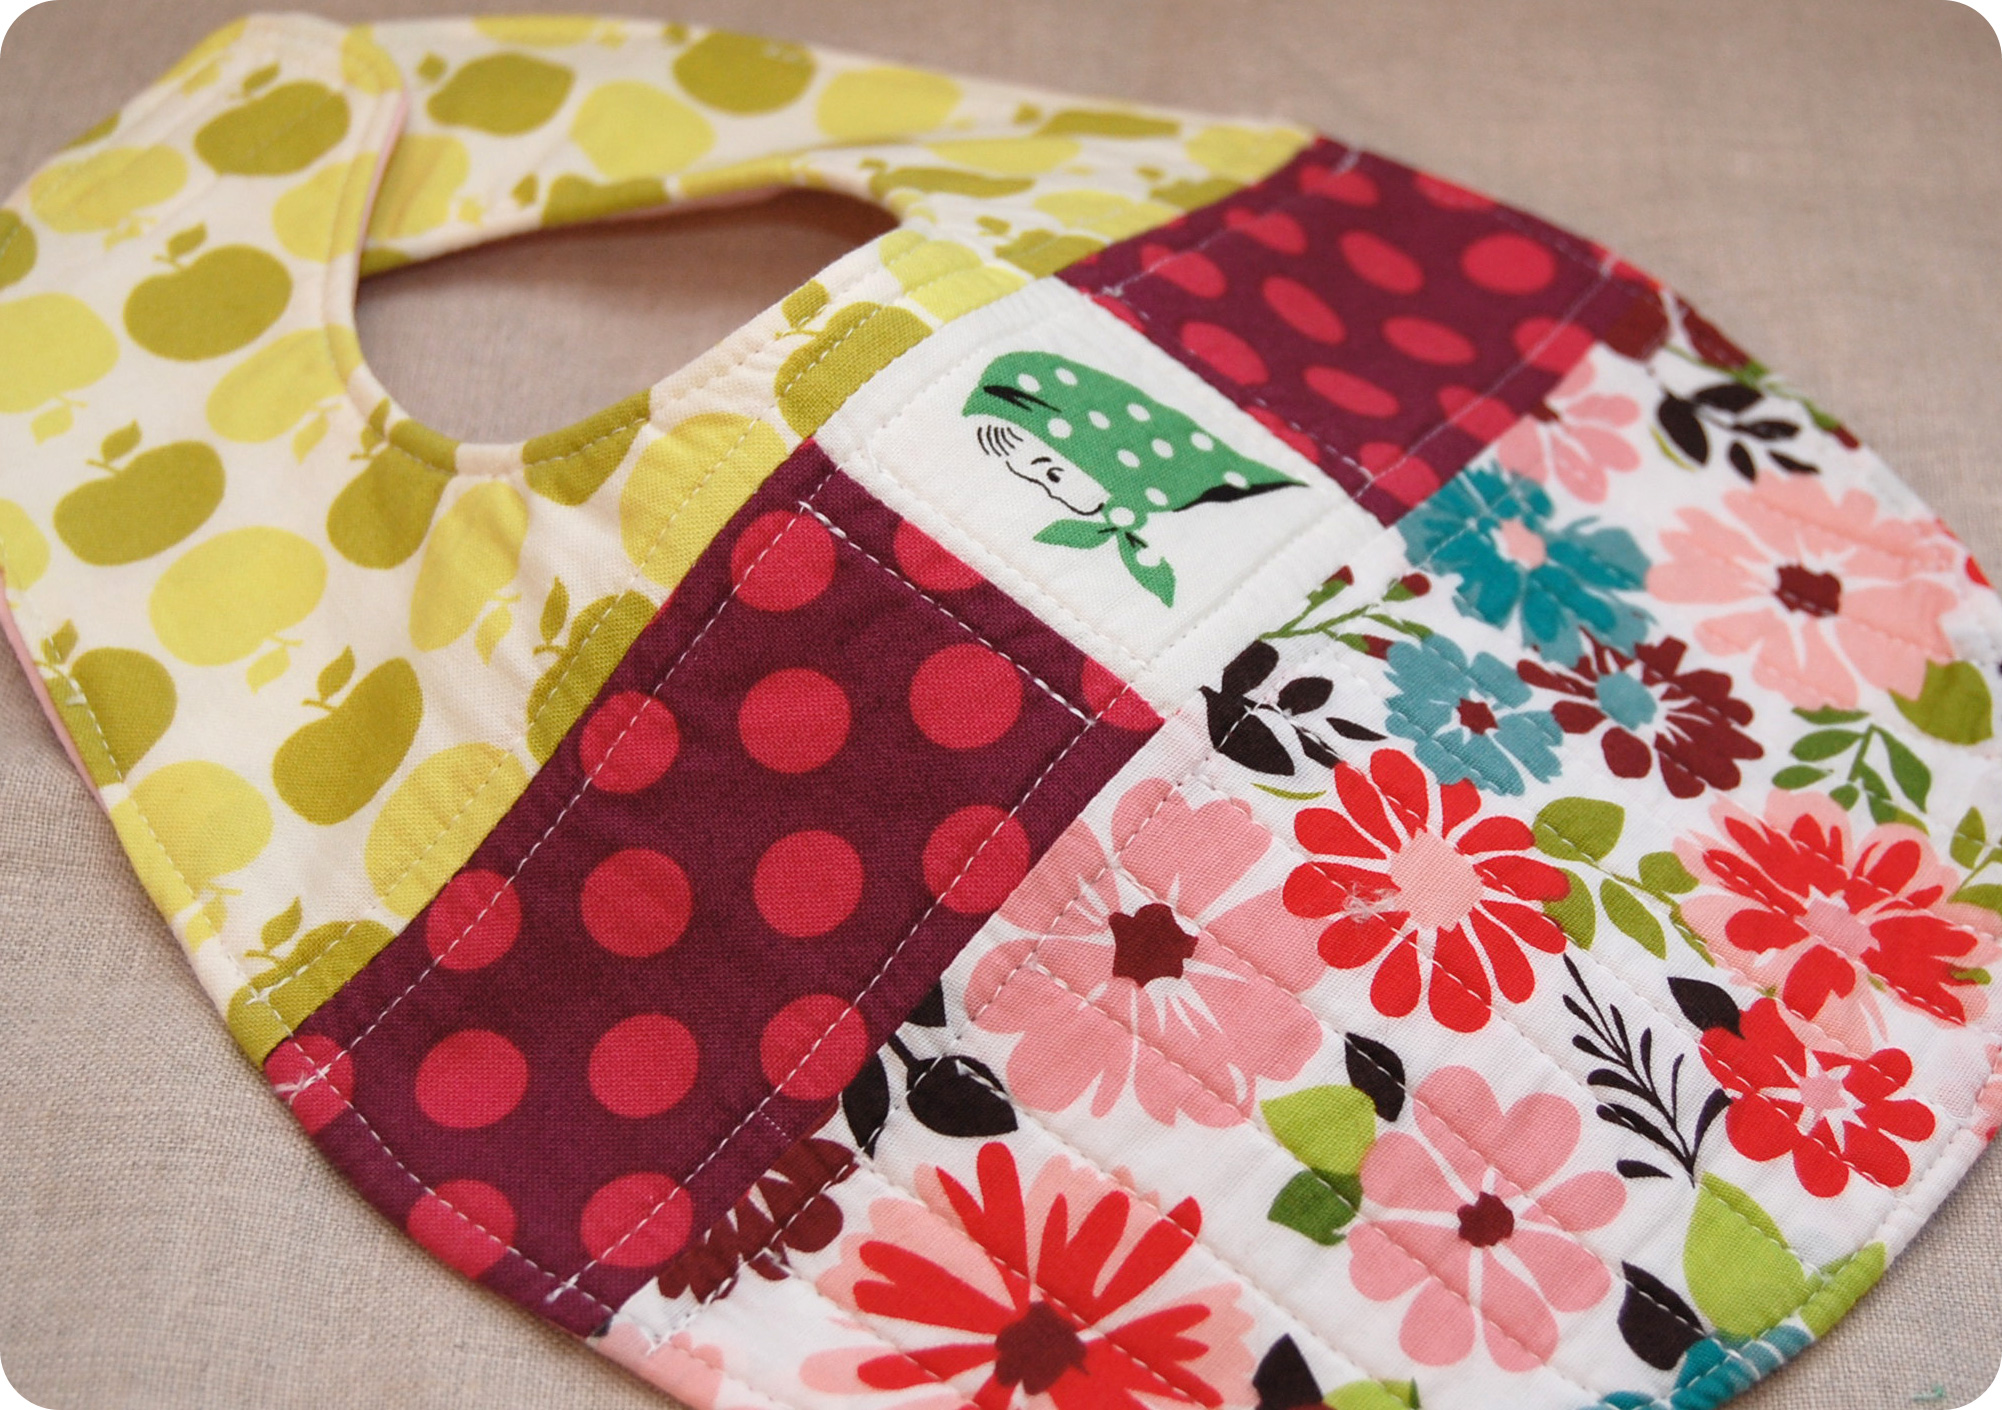 Quilted Patchwork Bib Pattern And Tutorial Sew She Sews S